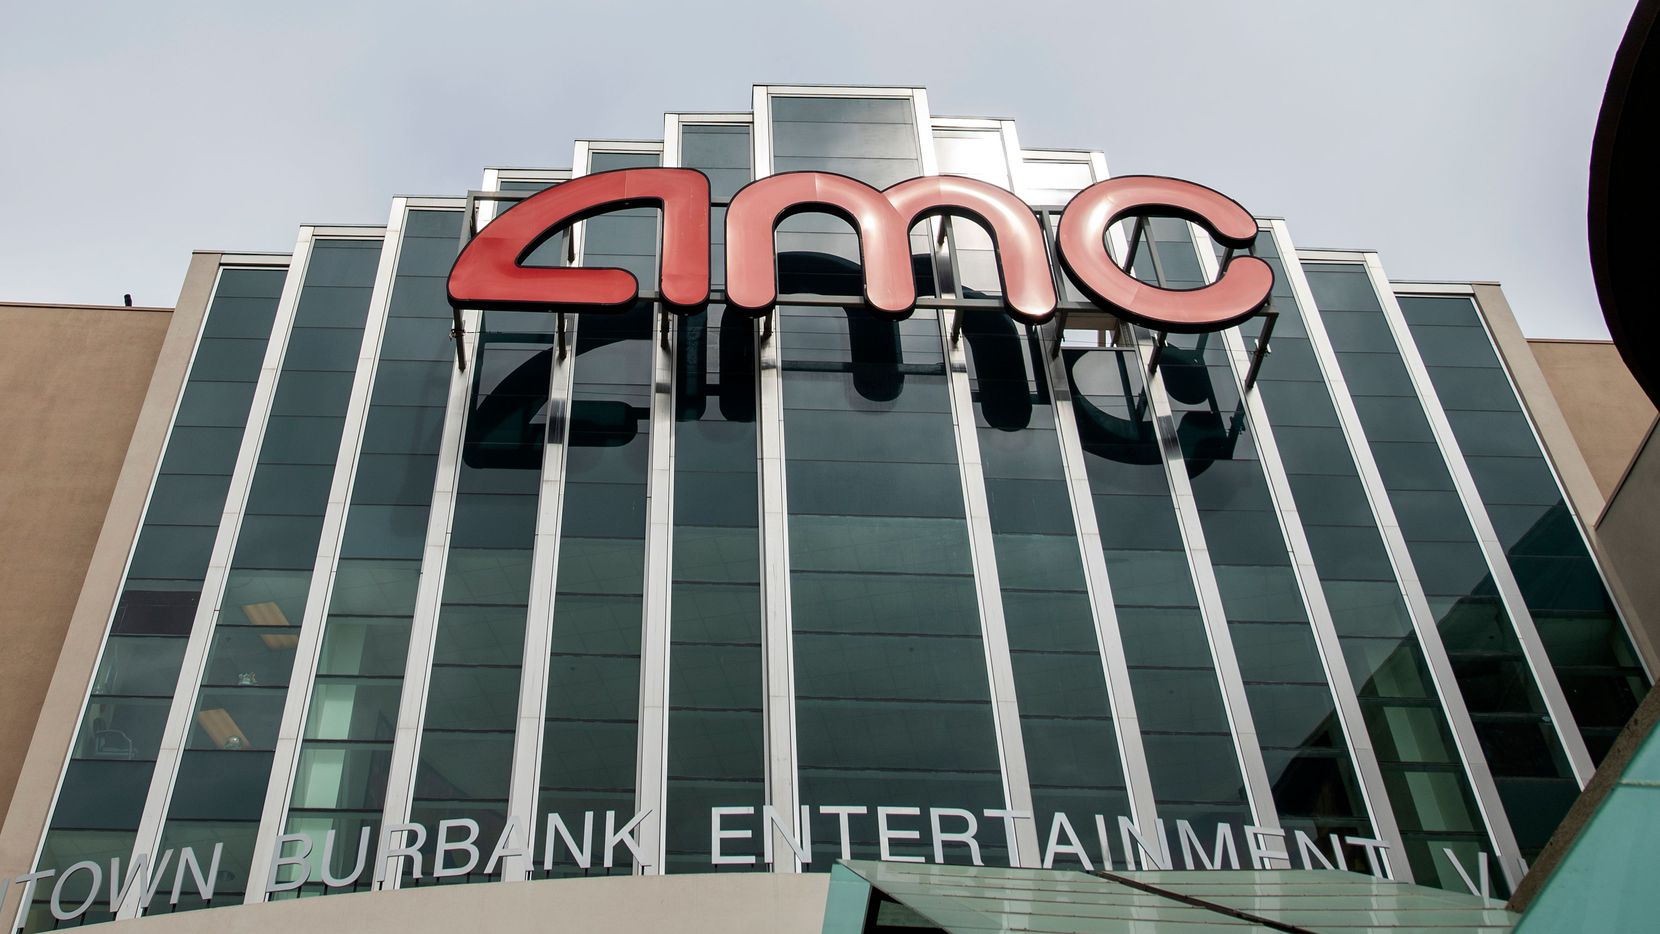 This May 12, 2020 photo shows a closed AMC theater in Burbank, Calif.